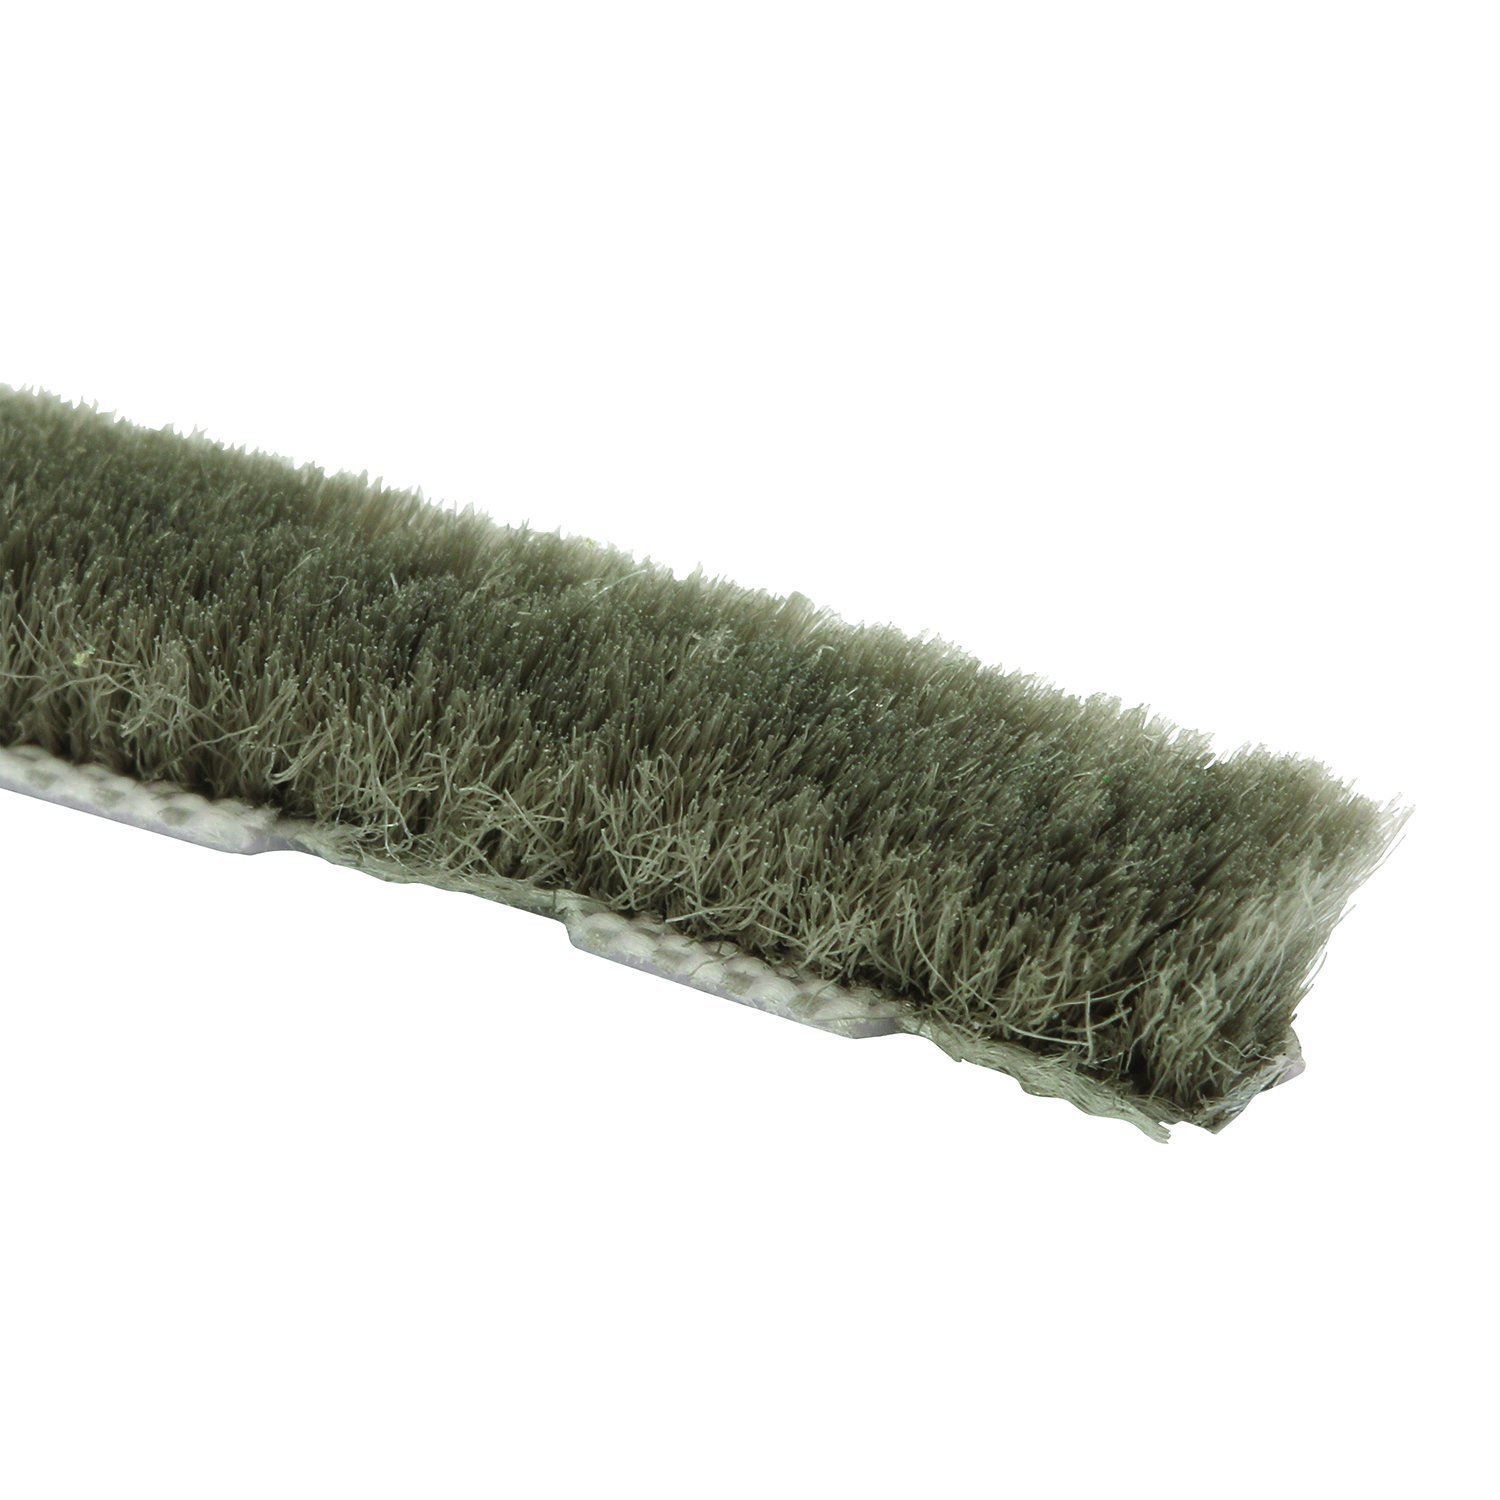 Prime-Line Products T 8756 Zipper Pile Weatherstrip for Windows & Doors, 18 ft., Grey, Owens Corning, Non-Adhesive